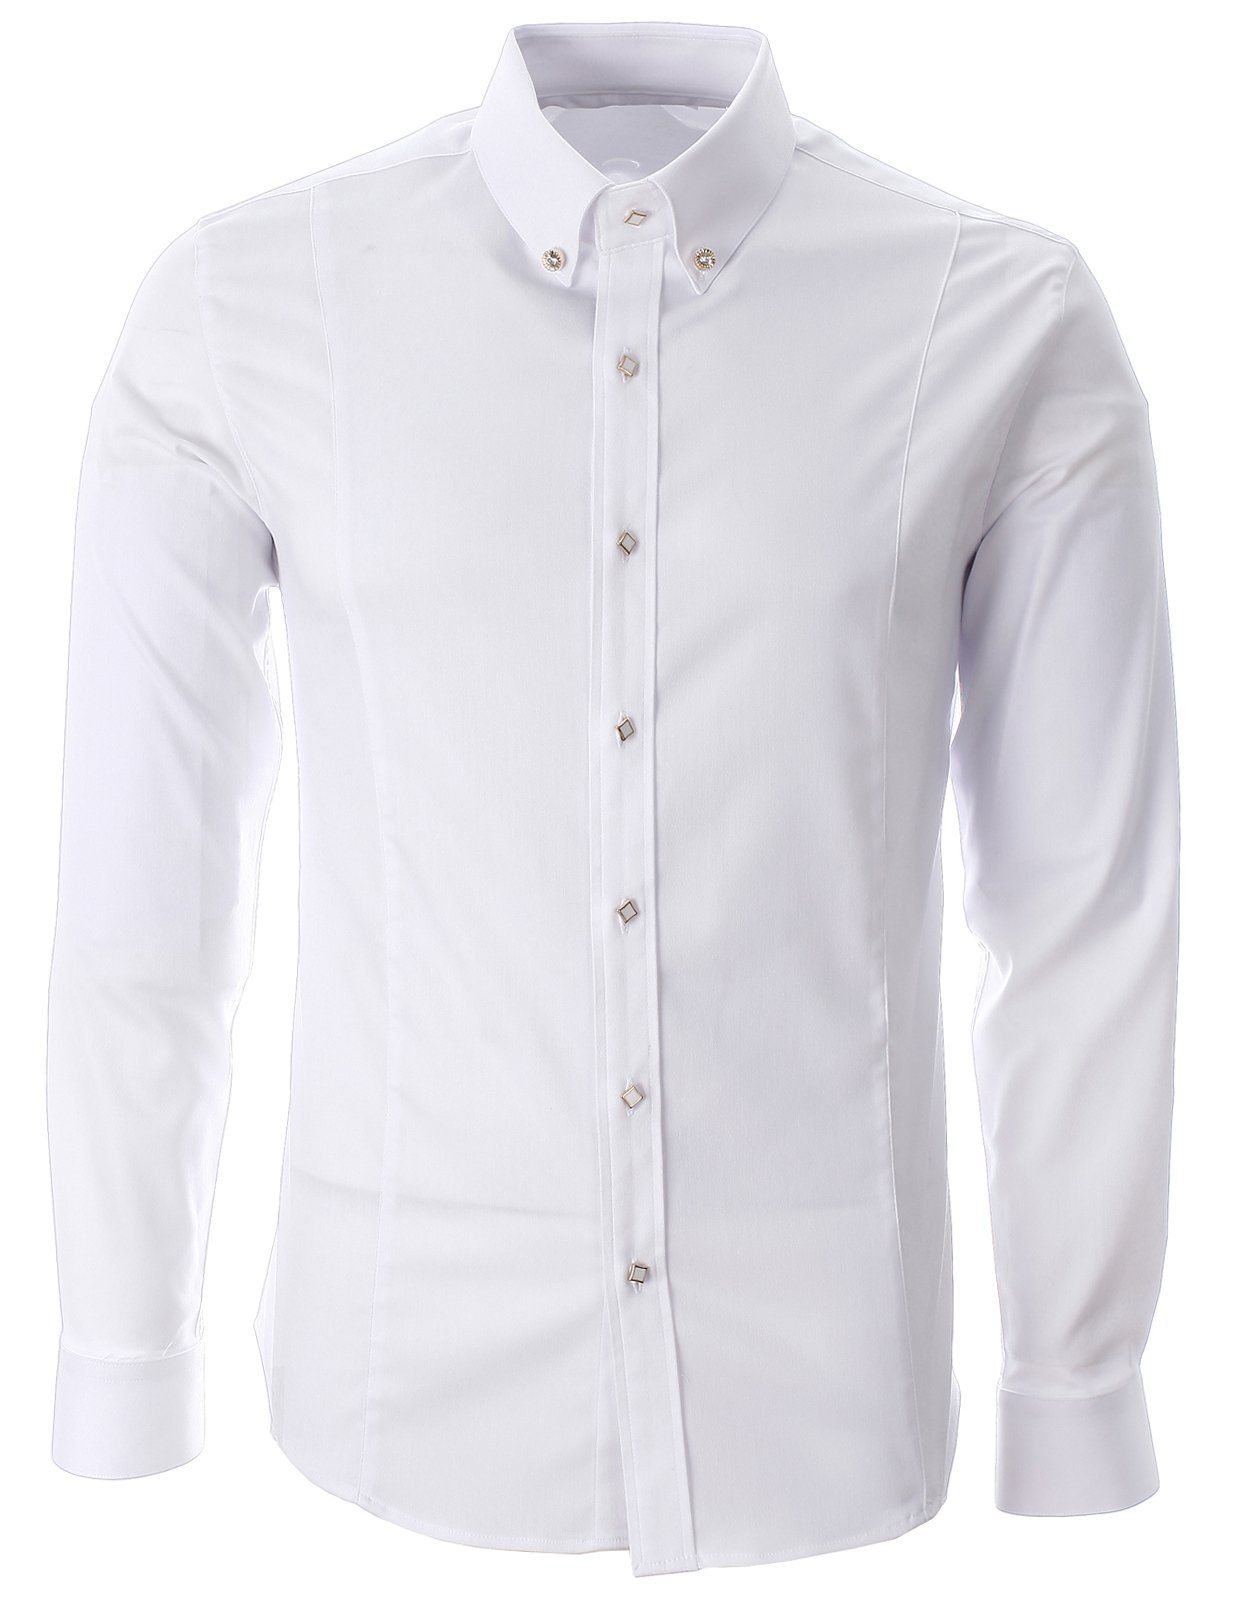 FLATSEVEN Mens Square Point Button Dress Shirt at Amazon Men's ...